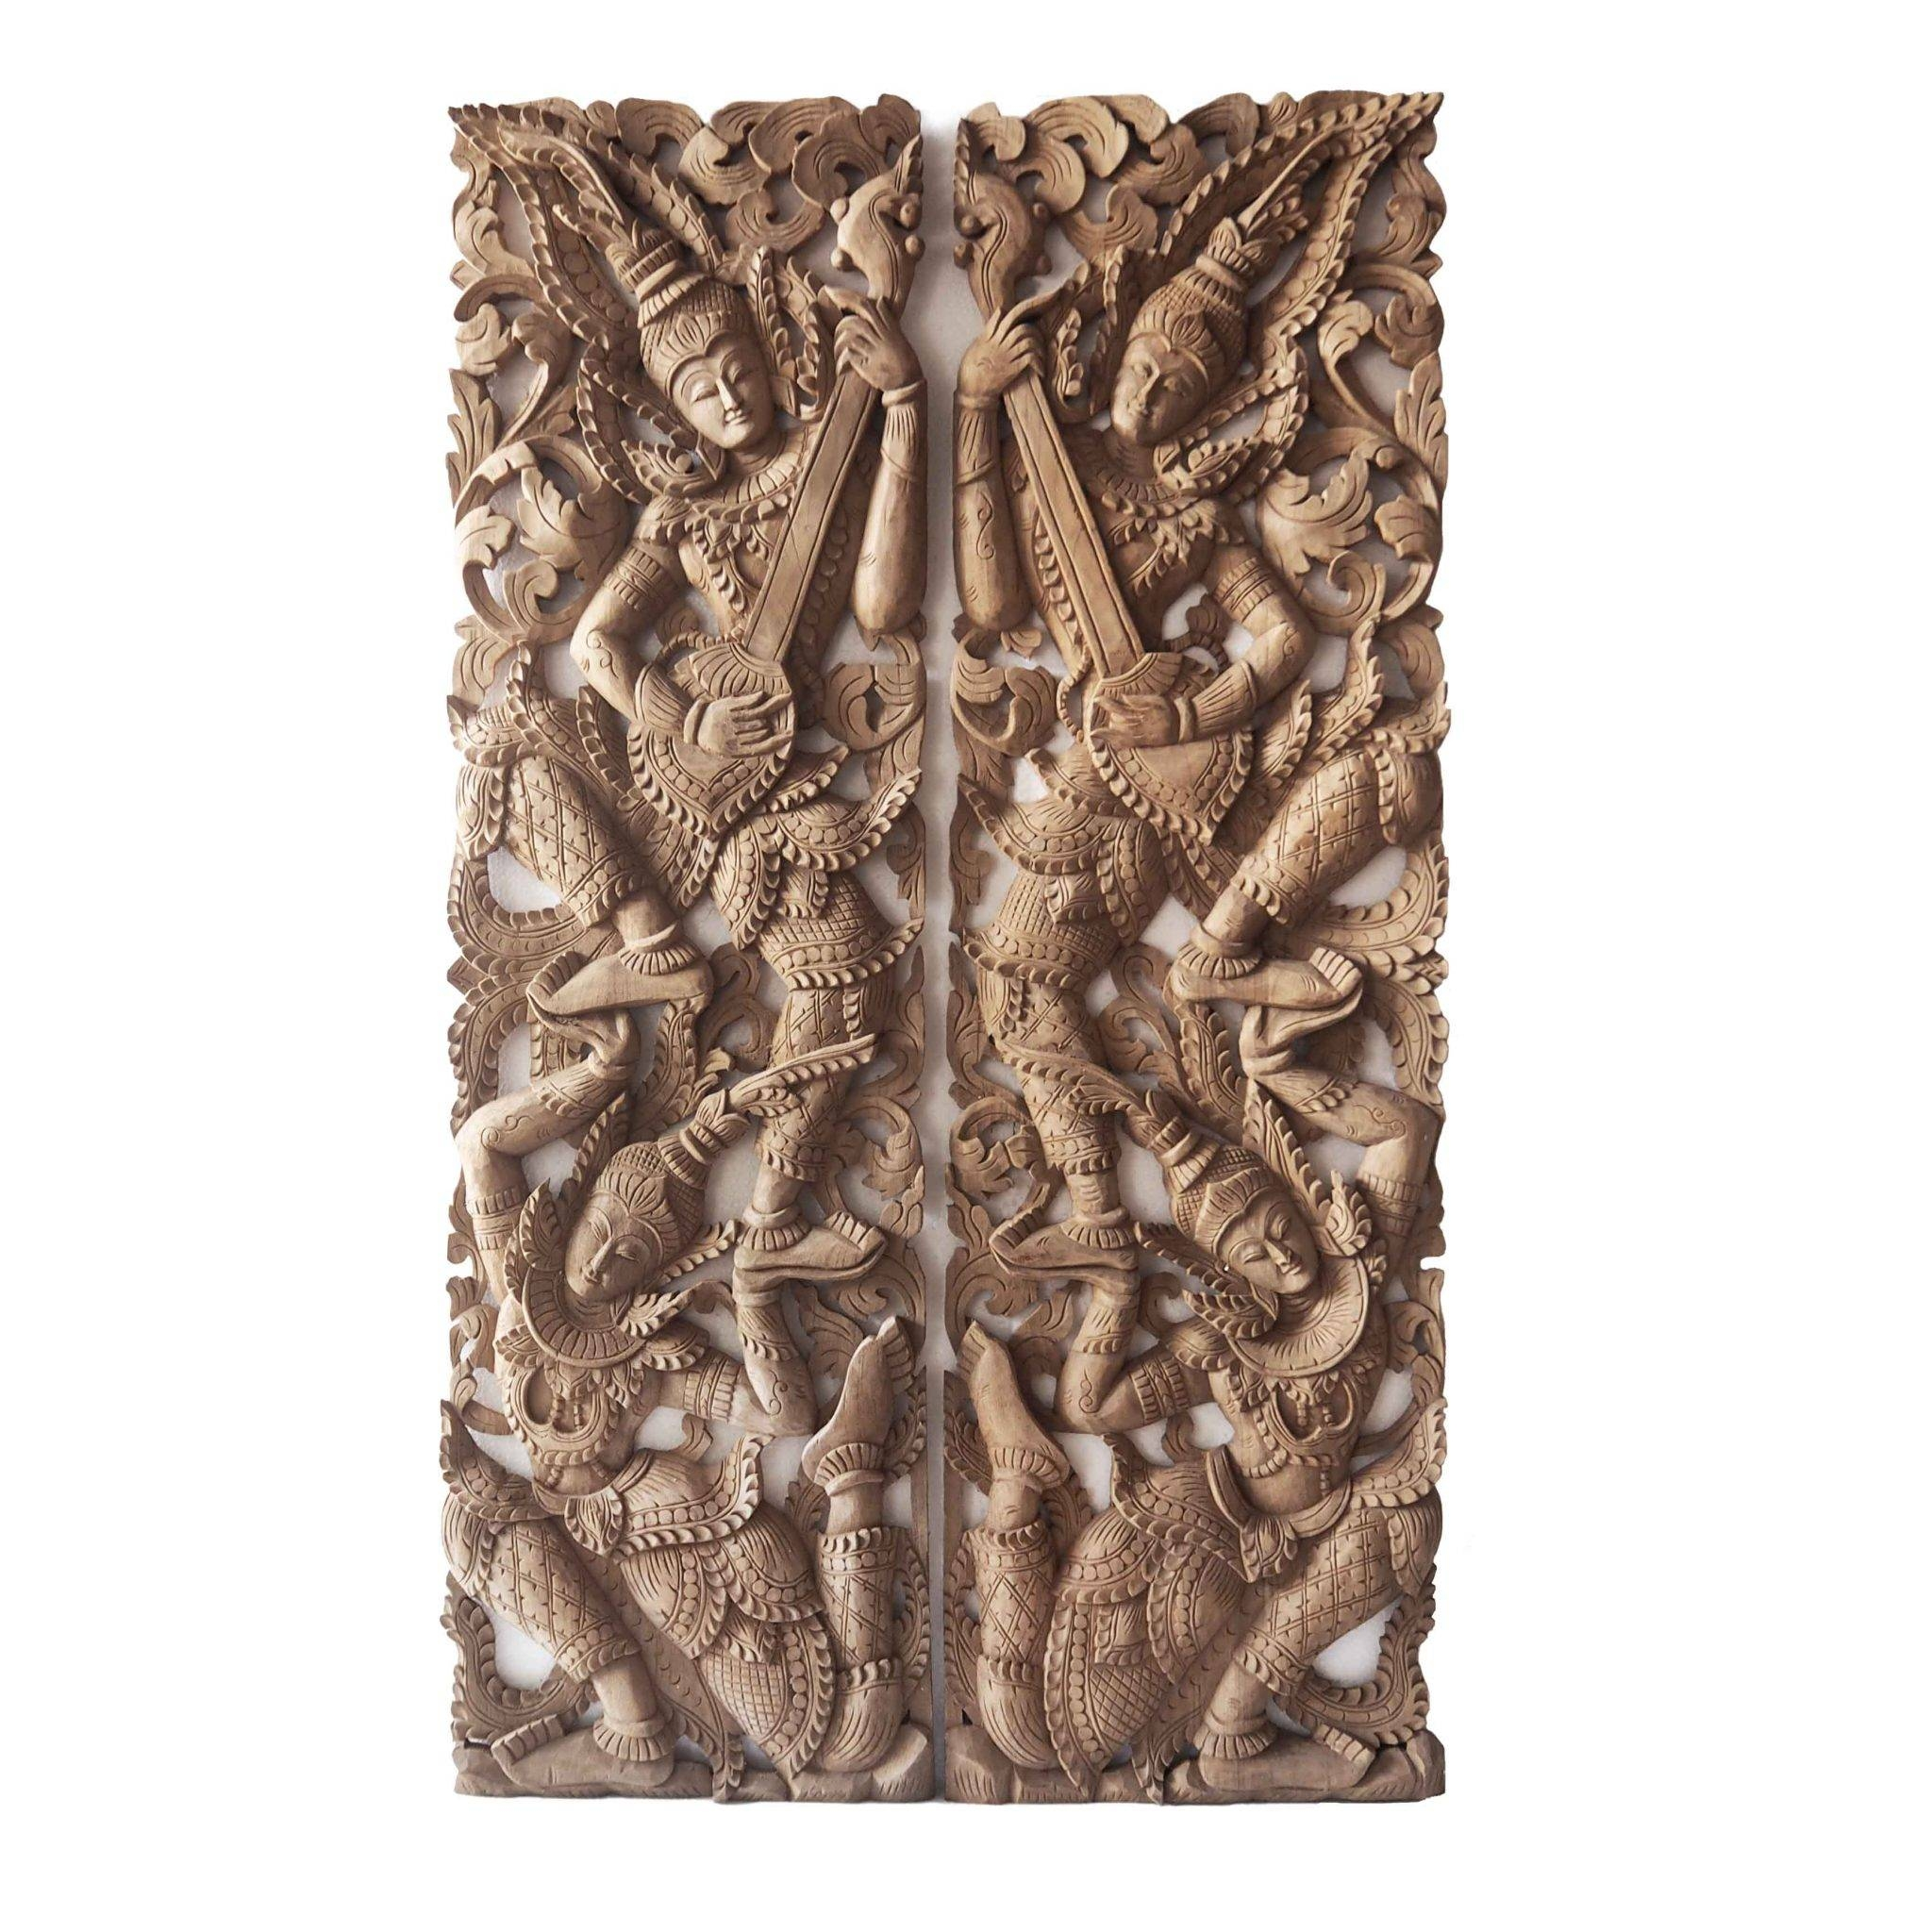 Pair Of Wooden Wall Art Panel From Thailand – Siam Sawadee Within Best And Newest Wooden Wall Art Panels (View 11 of 20)